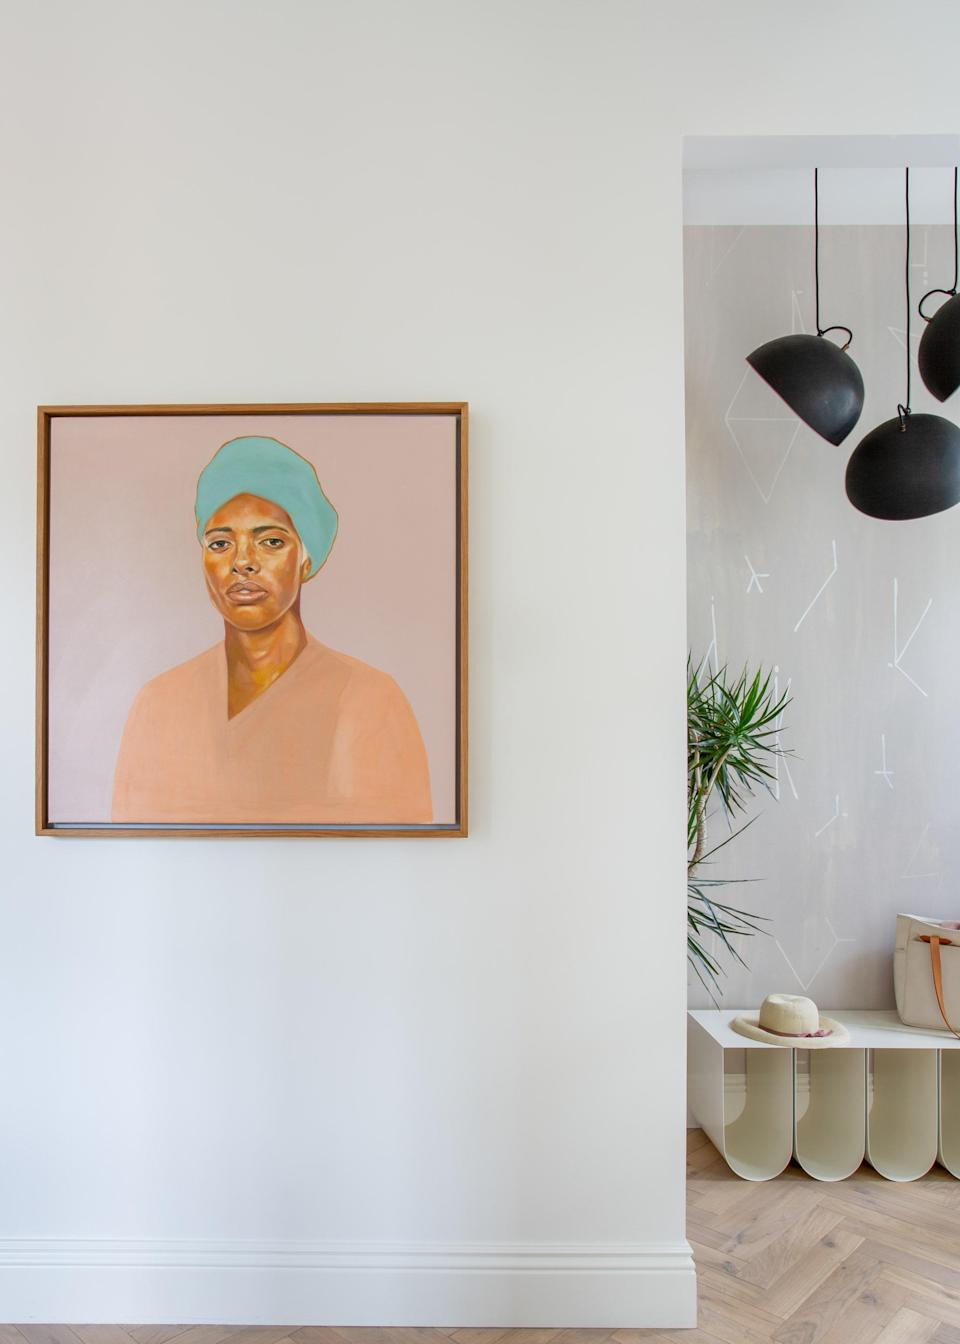 """<div class=""""caption"""">Regan was sourcing art for the project when the Black Lives Matter movement began and decided to use this opportunity to support artists of color, such as <a href=""""https://www.tawnychatmon.com/"""" rel=""""nofollow noopener"""" target=""""_blank"""" data-ylk=""""slk:Tawny Chatmon"""" class=""""link rapid-noclick-resp"""">Tawny Chatmon</a>, <a href=""""https://www.instagram.com/laurenpearce_designs/"""" rel=""""nofollow noopener"""" target=""""_blank"""" data-ylk=""""slk:Lauren Pearce"""" class=""""link rapid-noclick-resp"""">Lauren Pearce</a>, <a href=""""https://www.christadavid.com/"""" rel=""""nofollow noopener"""" target=""""_blank"""" data-ylk=""""slk:Christa David"""" class=""""link rapid-noclick-resp"""">Christa David</a>, and <a href=""""https://www.instagram.com/musebymarie/"""" rel=""""nofollow noopener"""" target=""""_blank"""" data-ylk=""""slk:Marie Alexander"""" class=""""link rapid-noclick-resp"""">Marie Alexander</a>. The piece shown above is <em>Shura</em> by Lauren Pearce.</div>"""